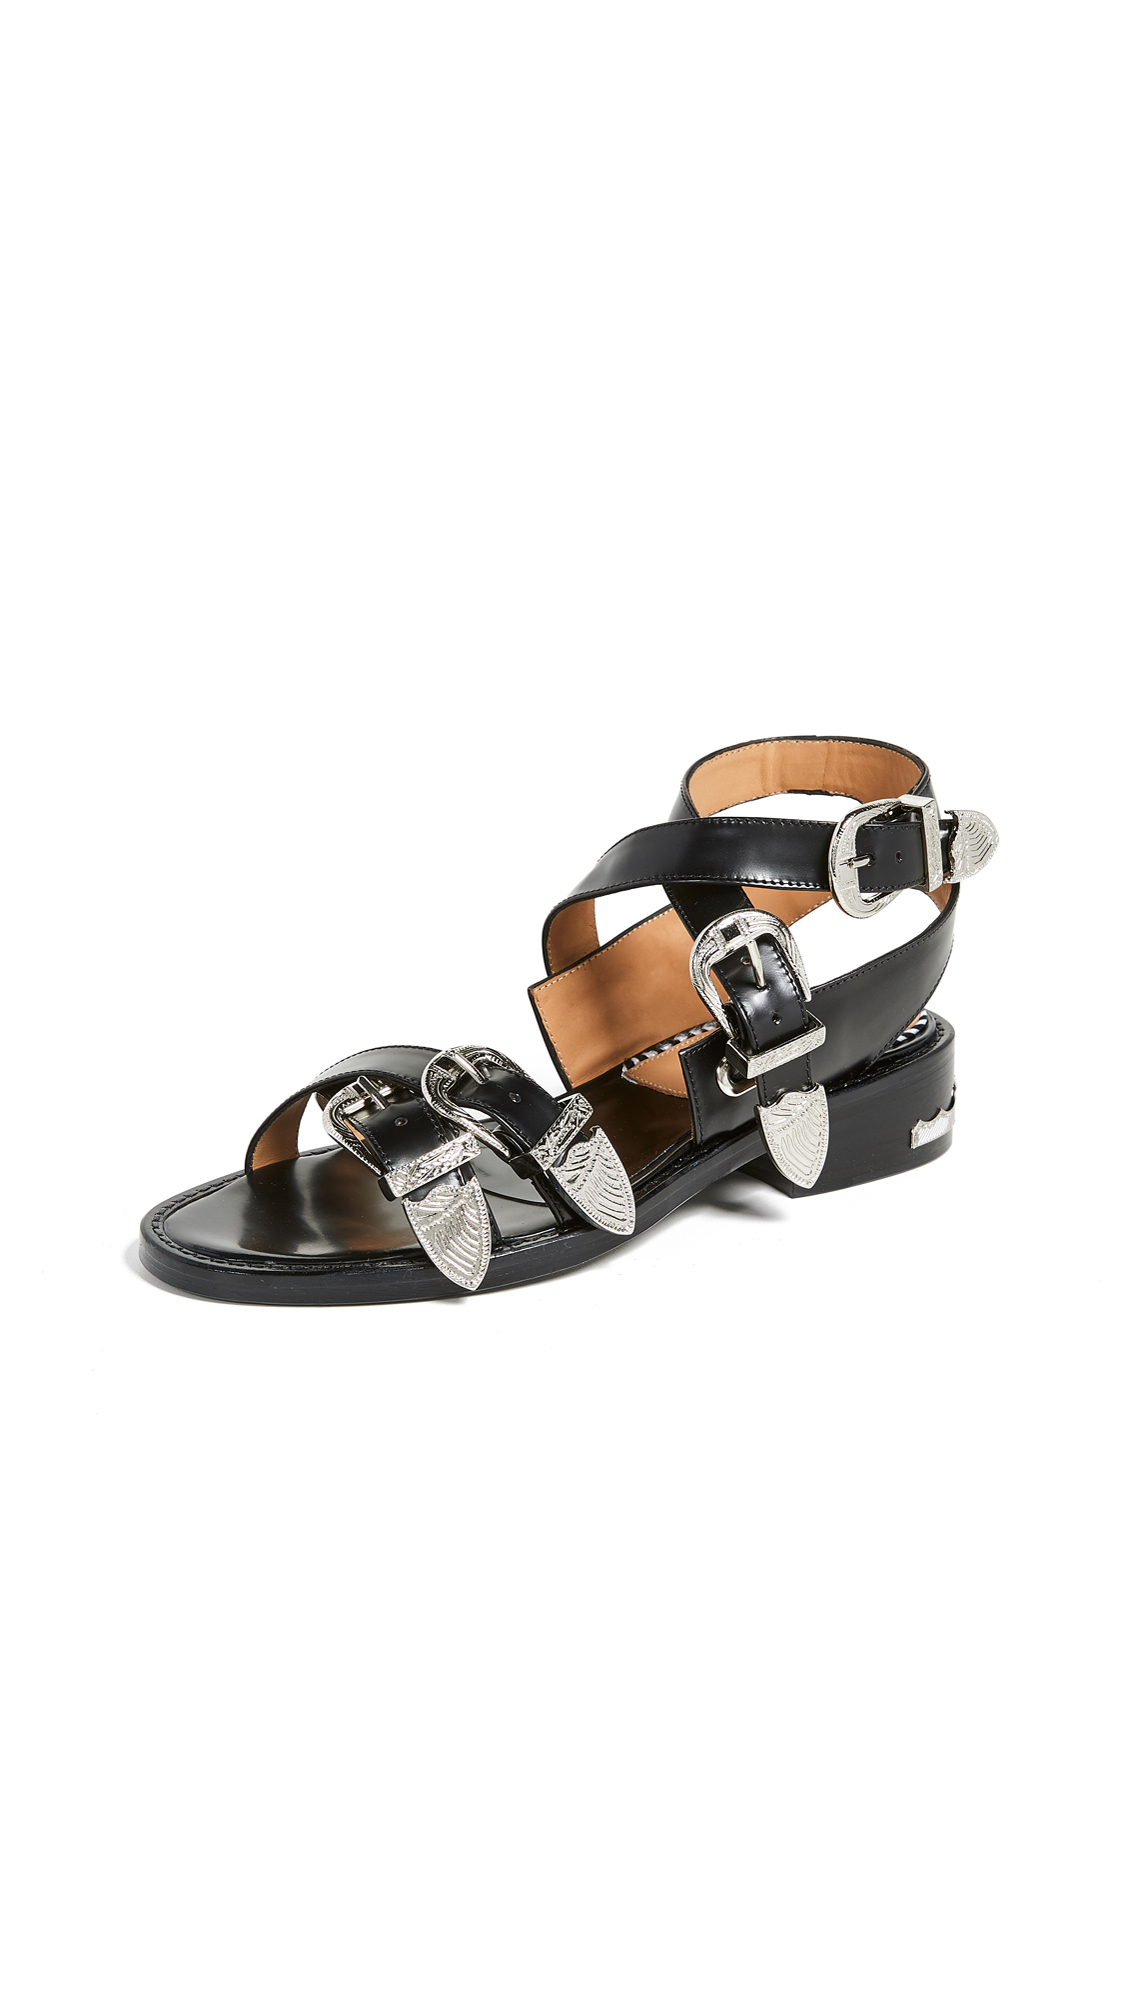 Toga Pulla Buckle Strap Sandals - Black